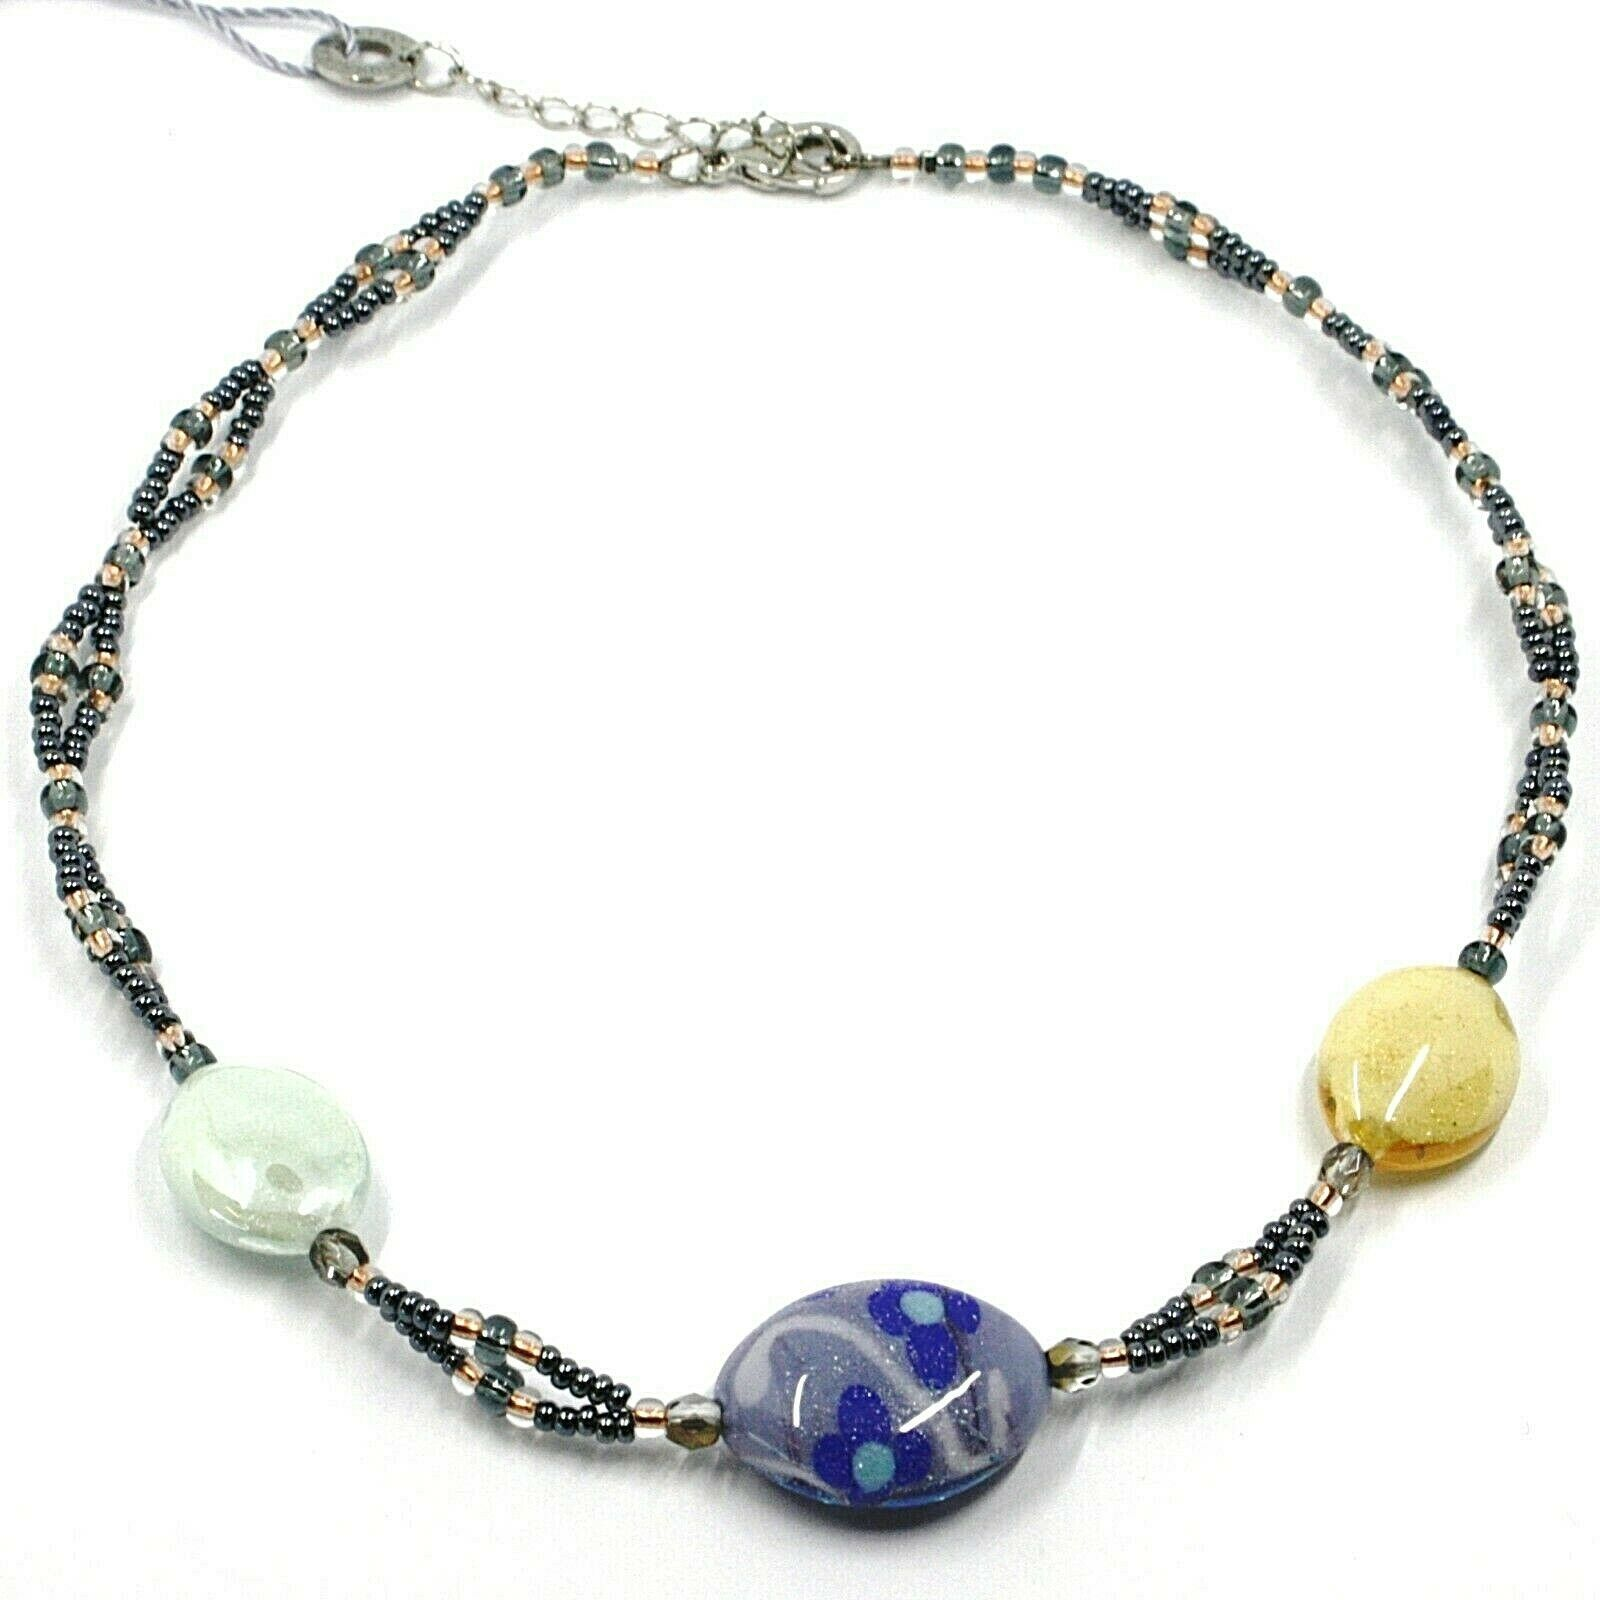 Necklace Antica Murrina Venezia, CO997A19, Ovals Blue Green Yellow, with Flowers